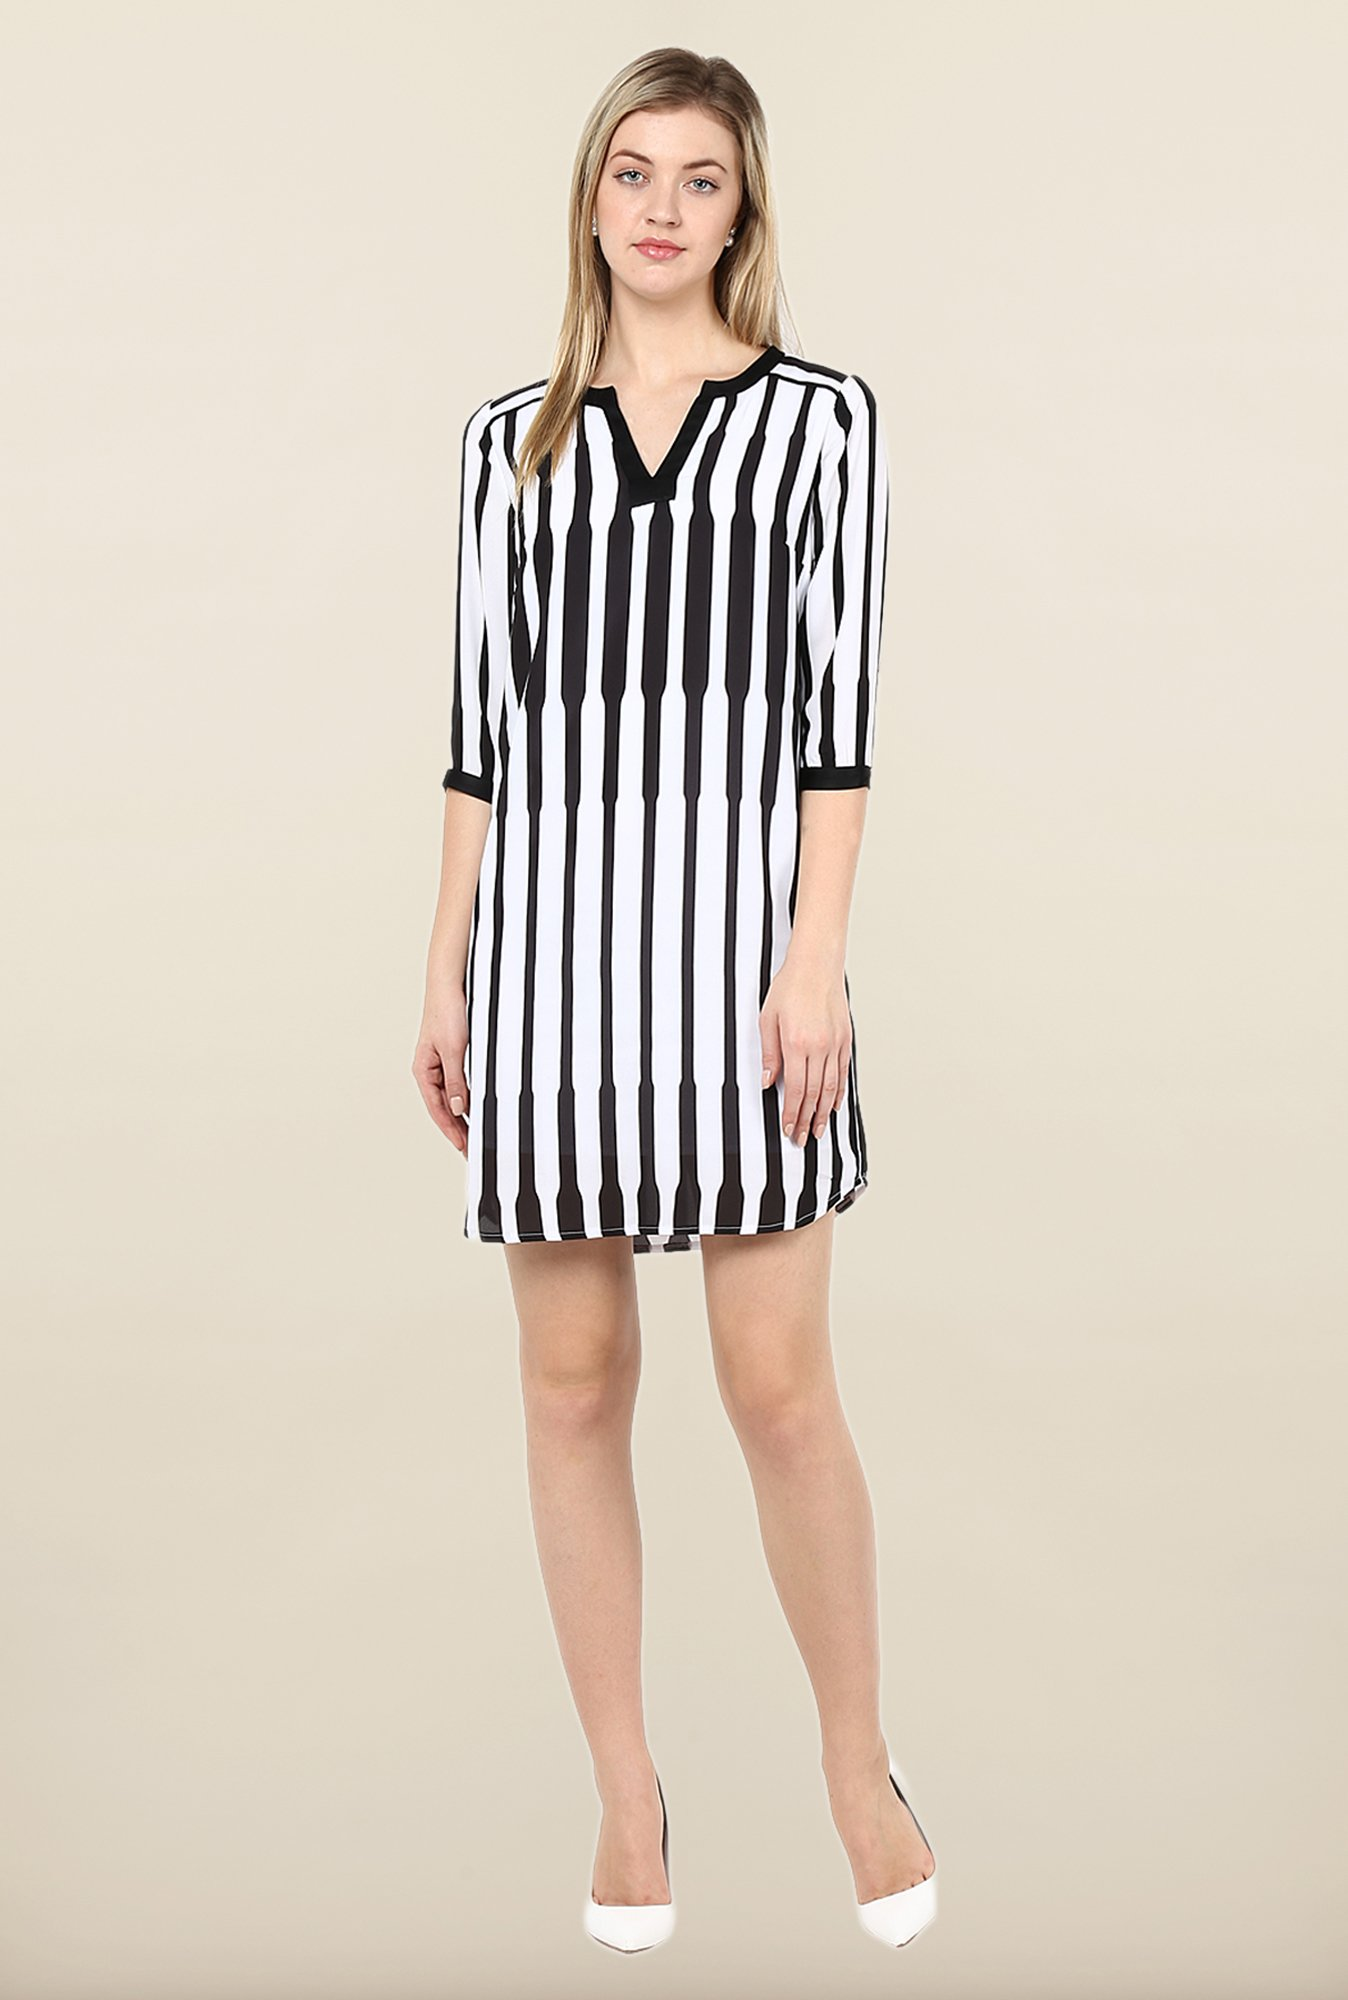 Avirate White & Black Printed Tunic Dress